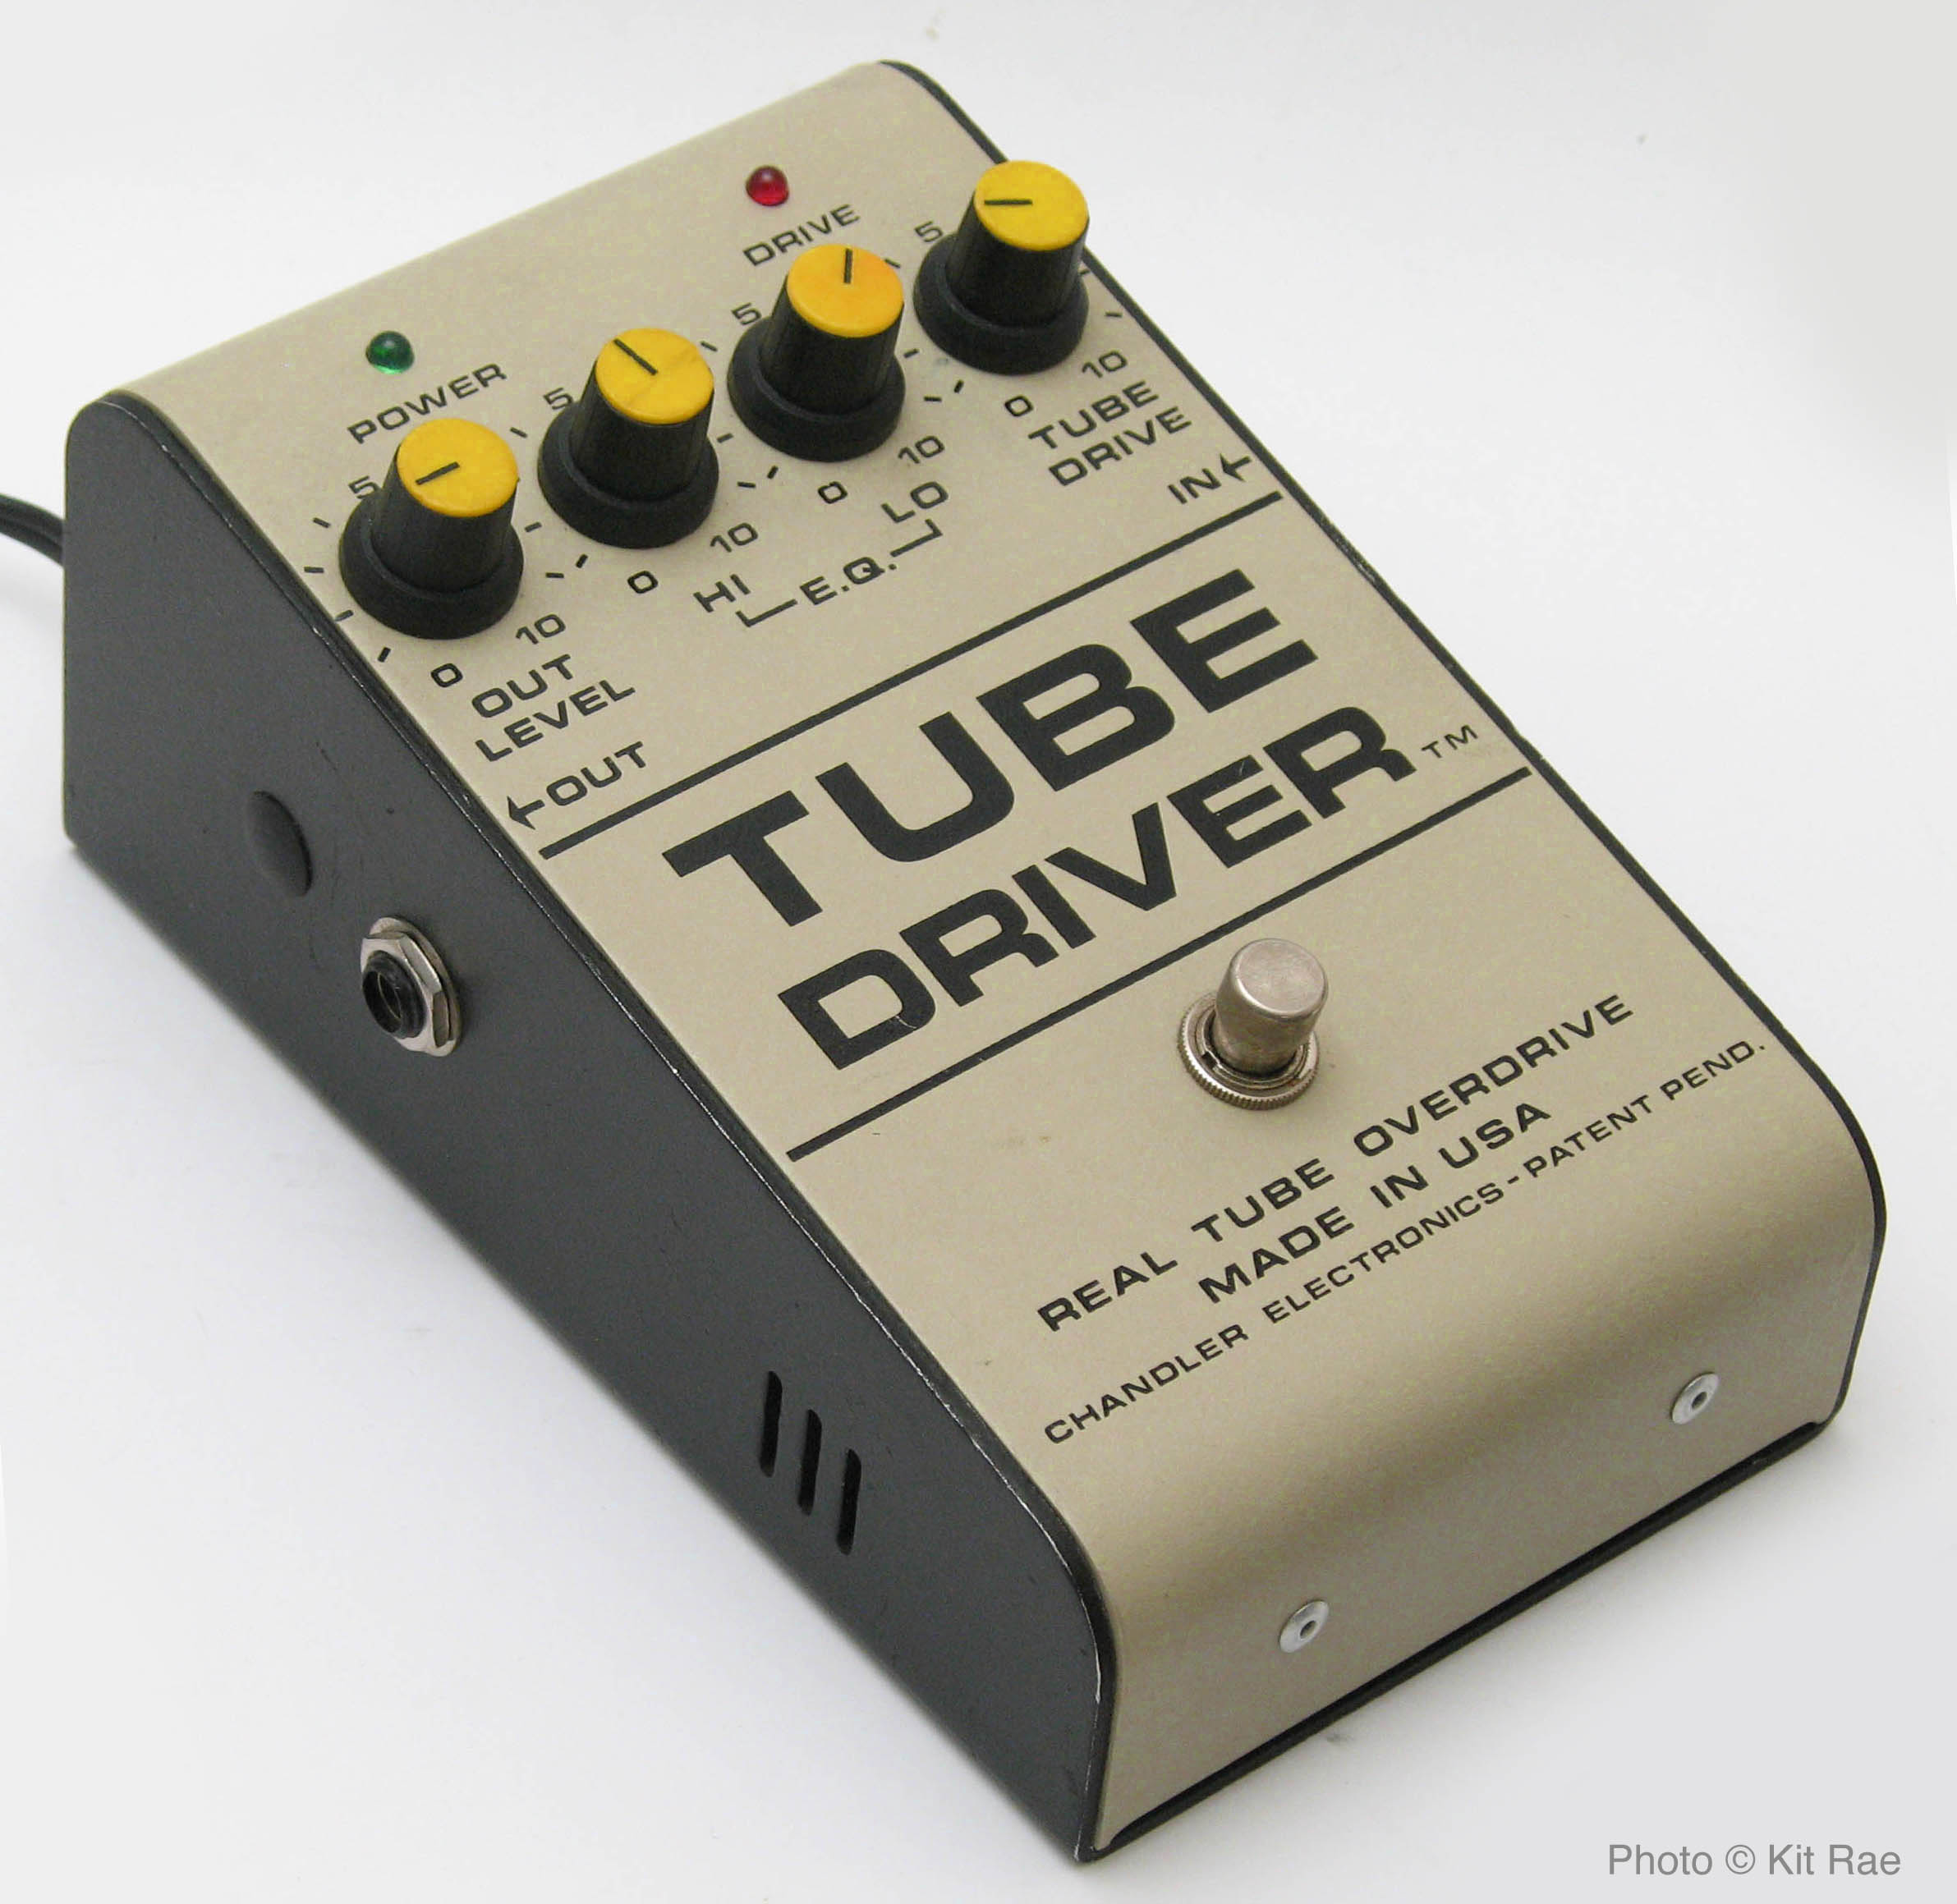 Bk Butler Tube Driver Guitar Circuits And Schematics Fuzzi Amps Other Effects Amplifier Or Integrated Circuit Chip A Pre Amp Running On Starved Voltage To Generate The Distortion Which Led Popular 4 Knob